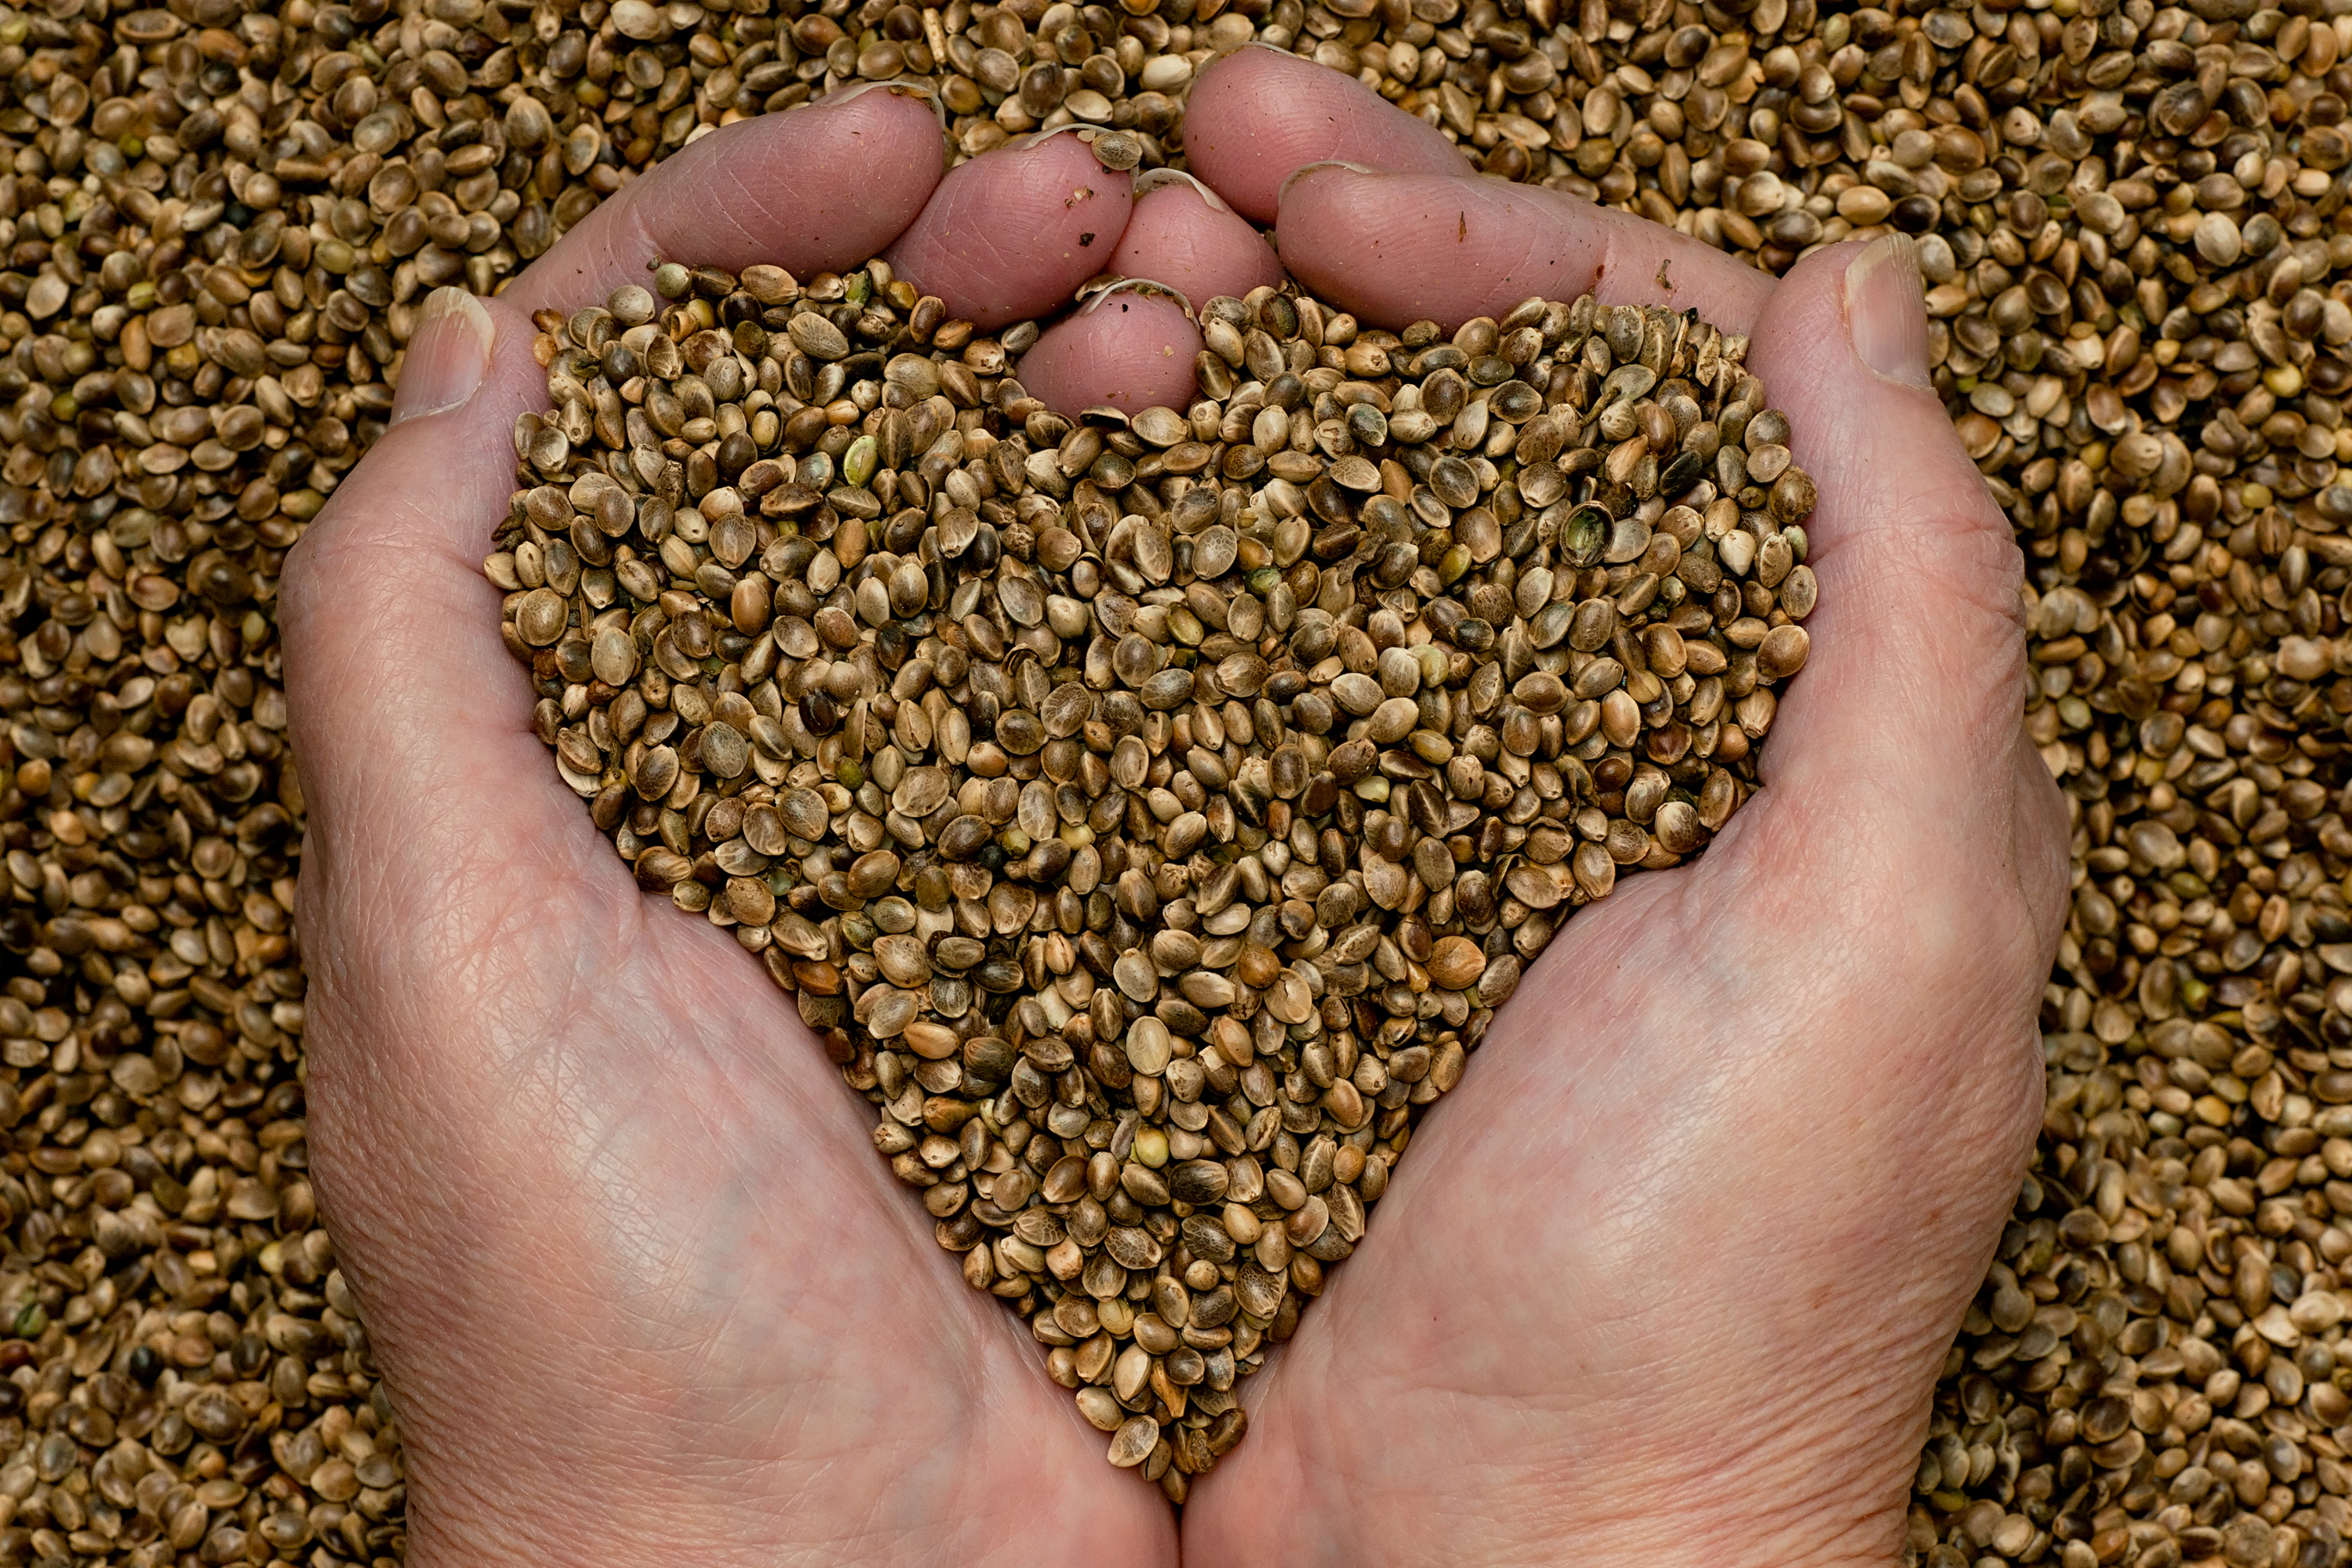 hemp-seeds-hands3